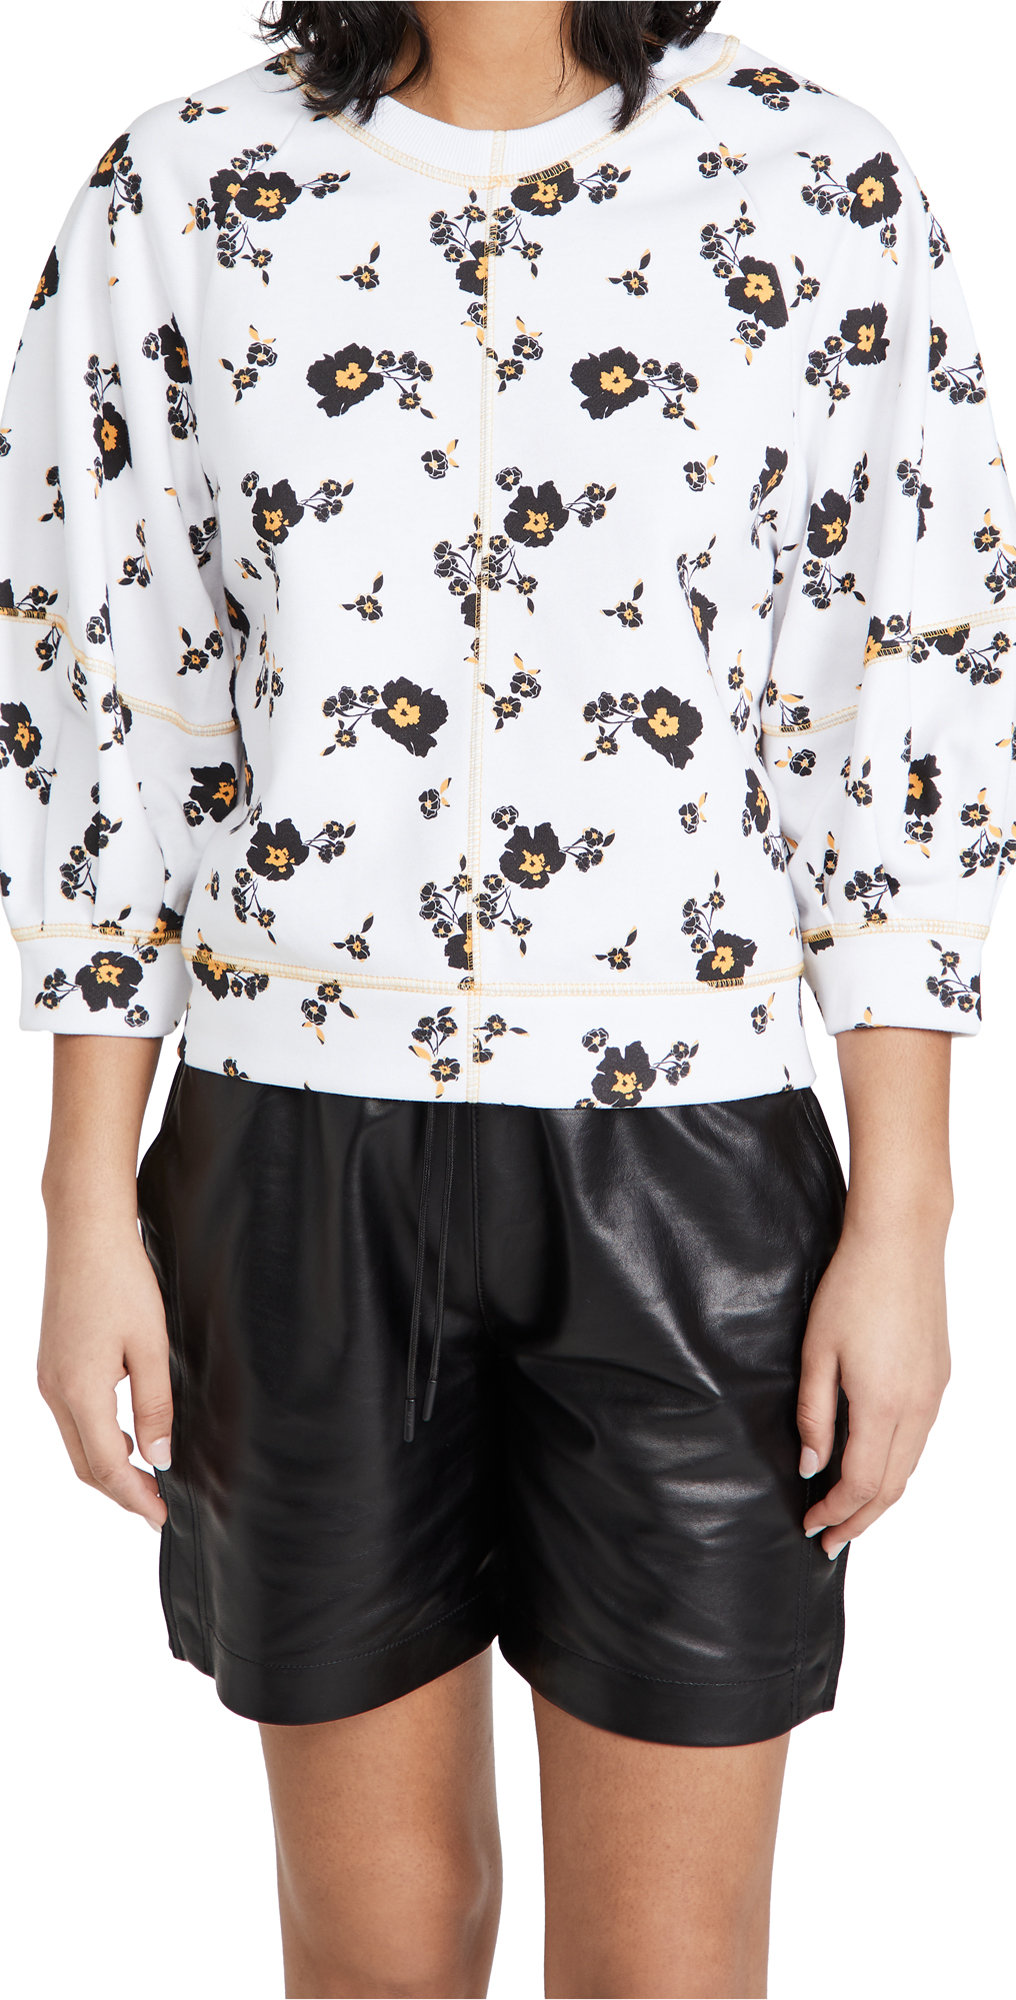 Tanya Taylor Women's Josephine Floral Sweatshirt In Scattered Blossom/optic White